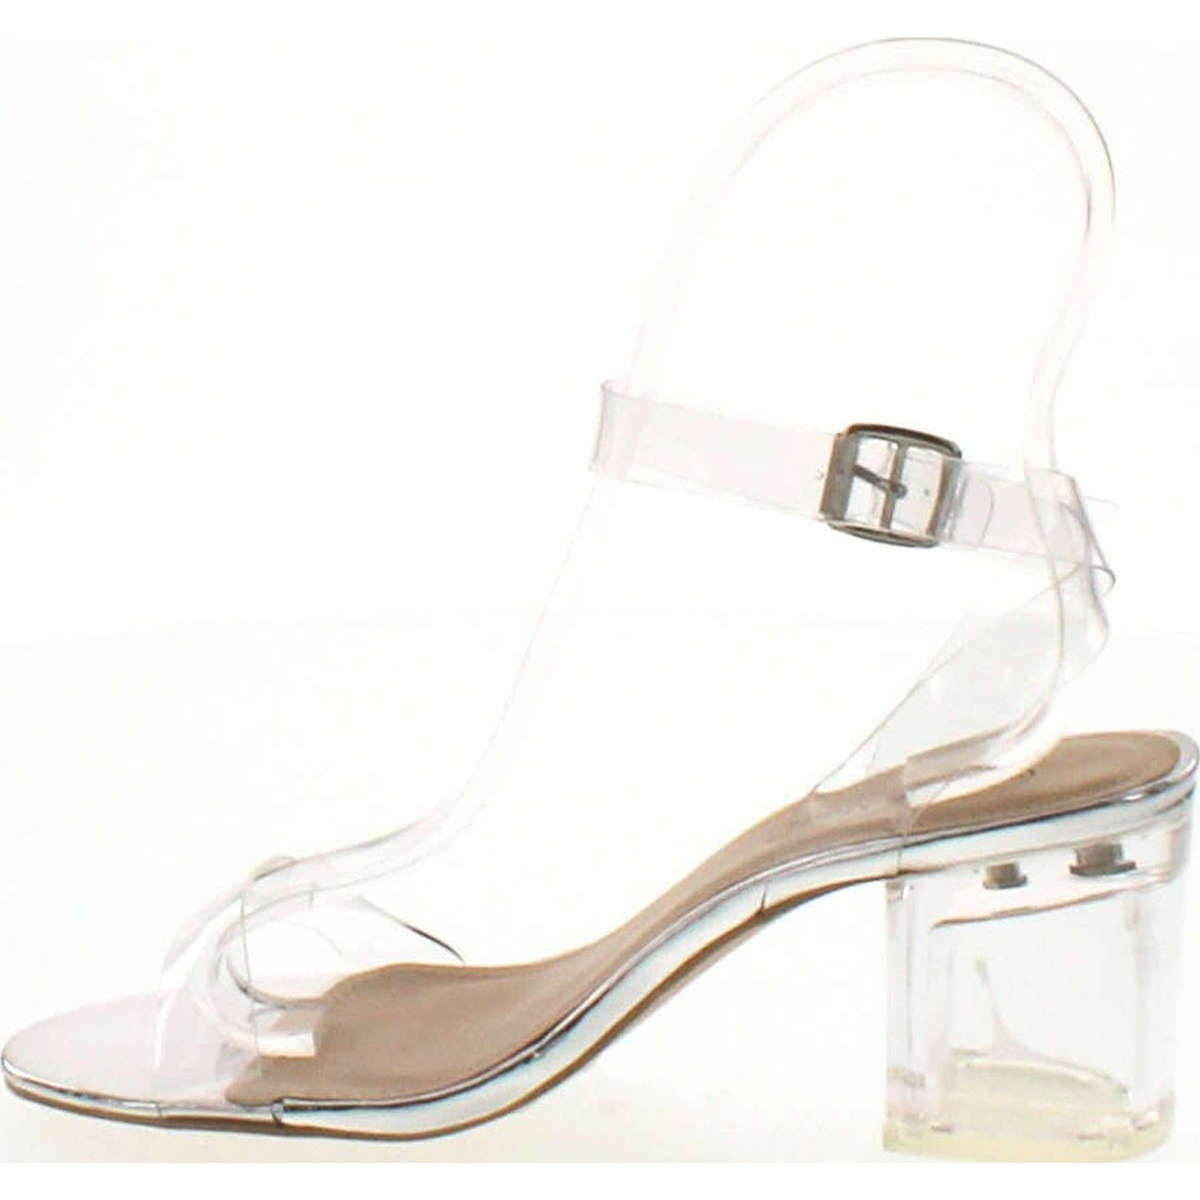 0f1065092 Shop Top Moda Womens Ivan-1 Lucite Clear Strappy Block Chunky High Heel  Open Peep Toe Sandal - Free Shipping On Orders Over $45 - Overstock -  14820225